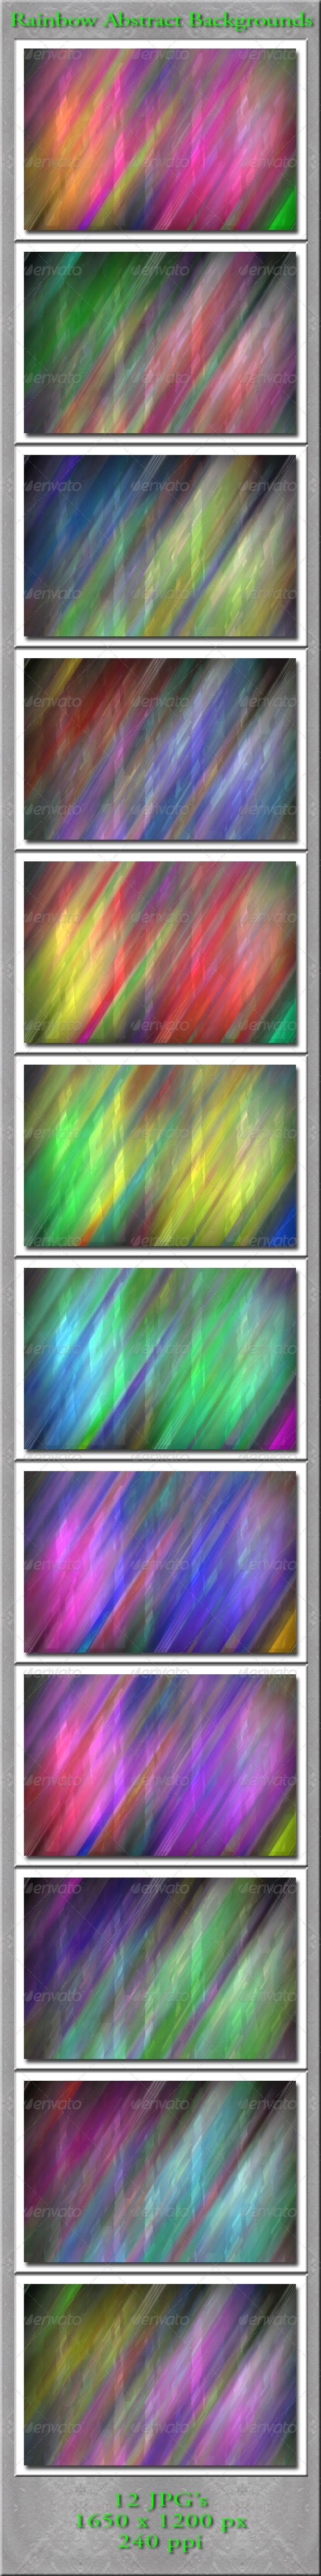 GraphicRiver Rainbow Abstract Backgrounds 4882593